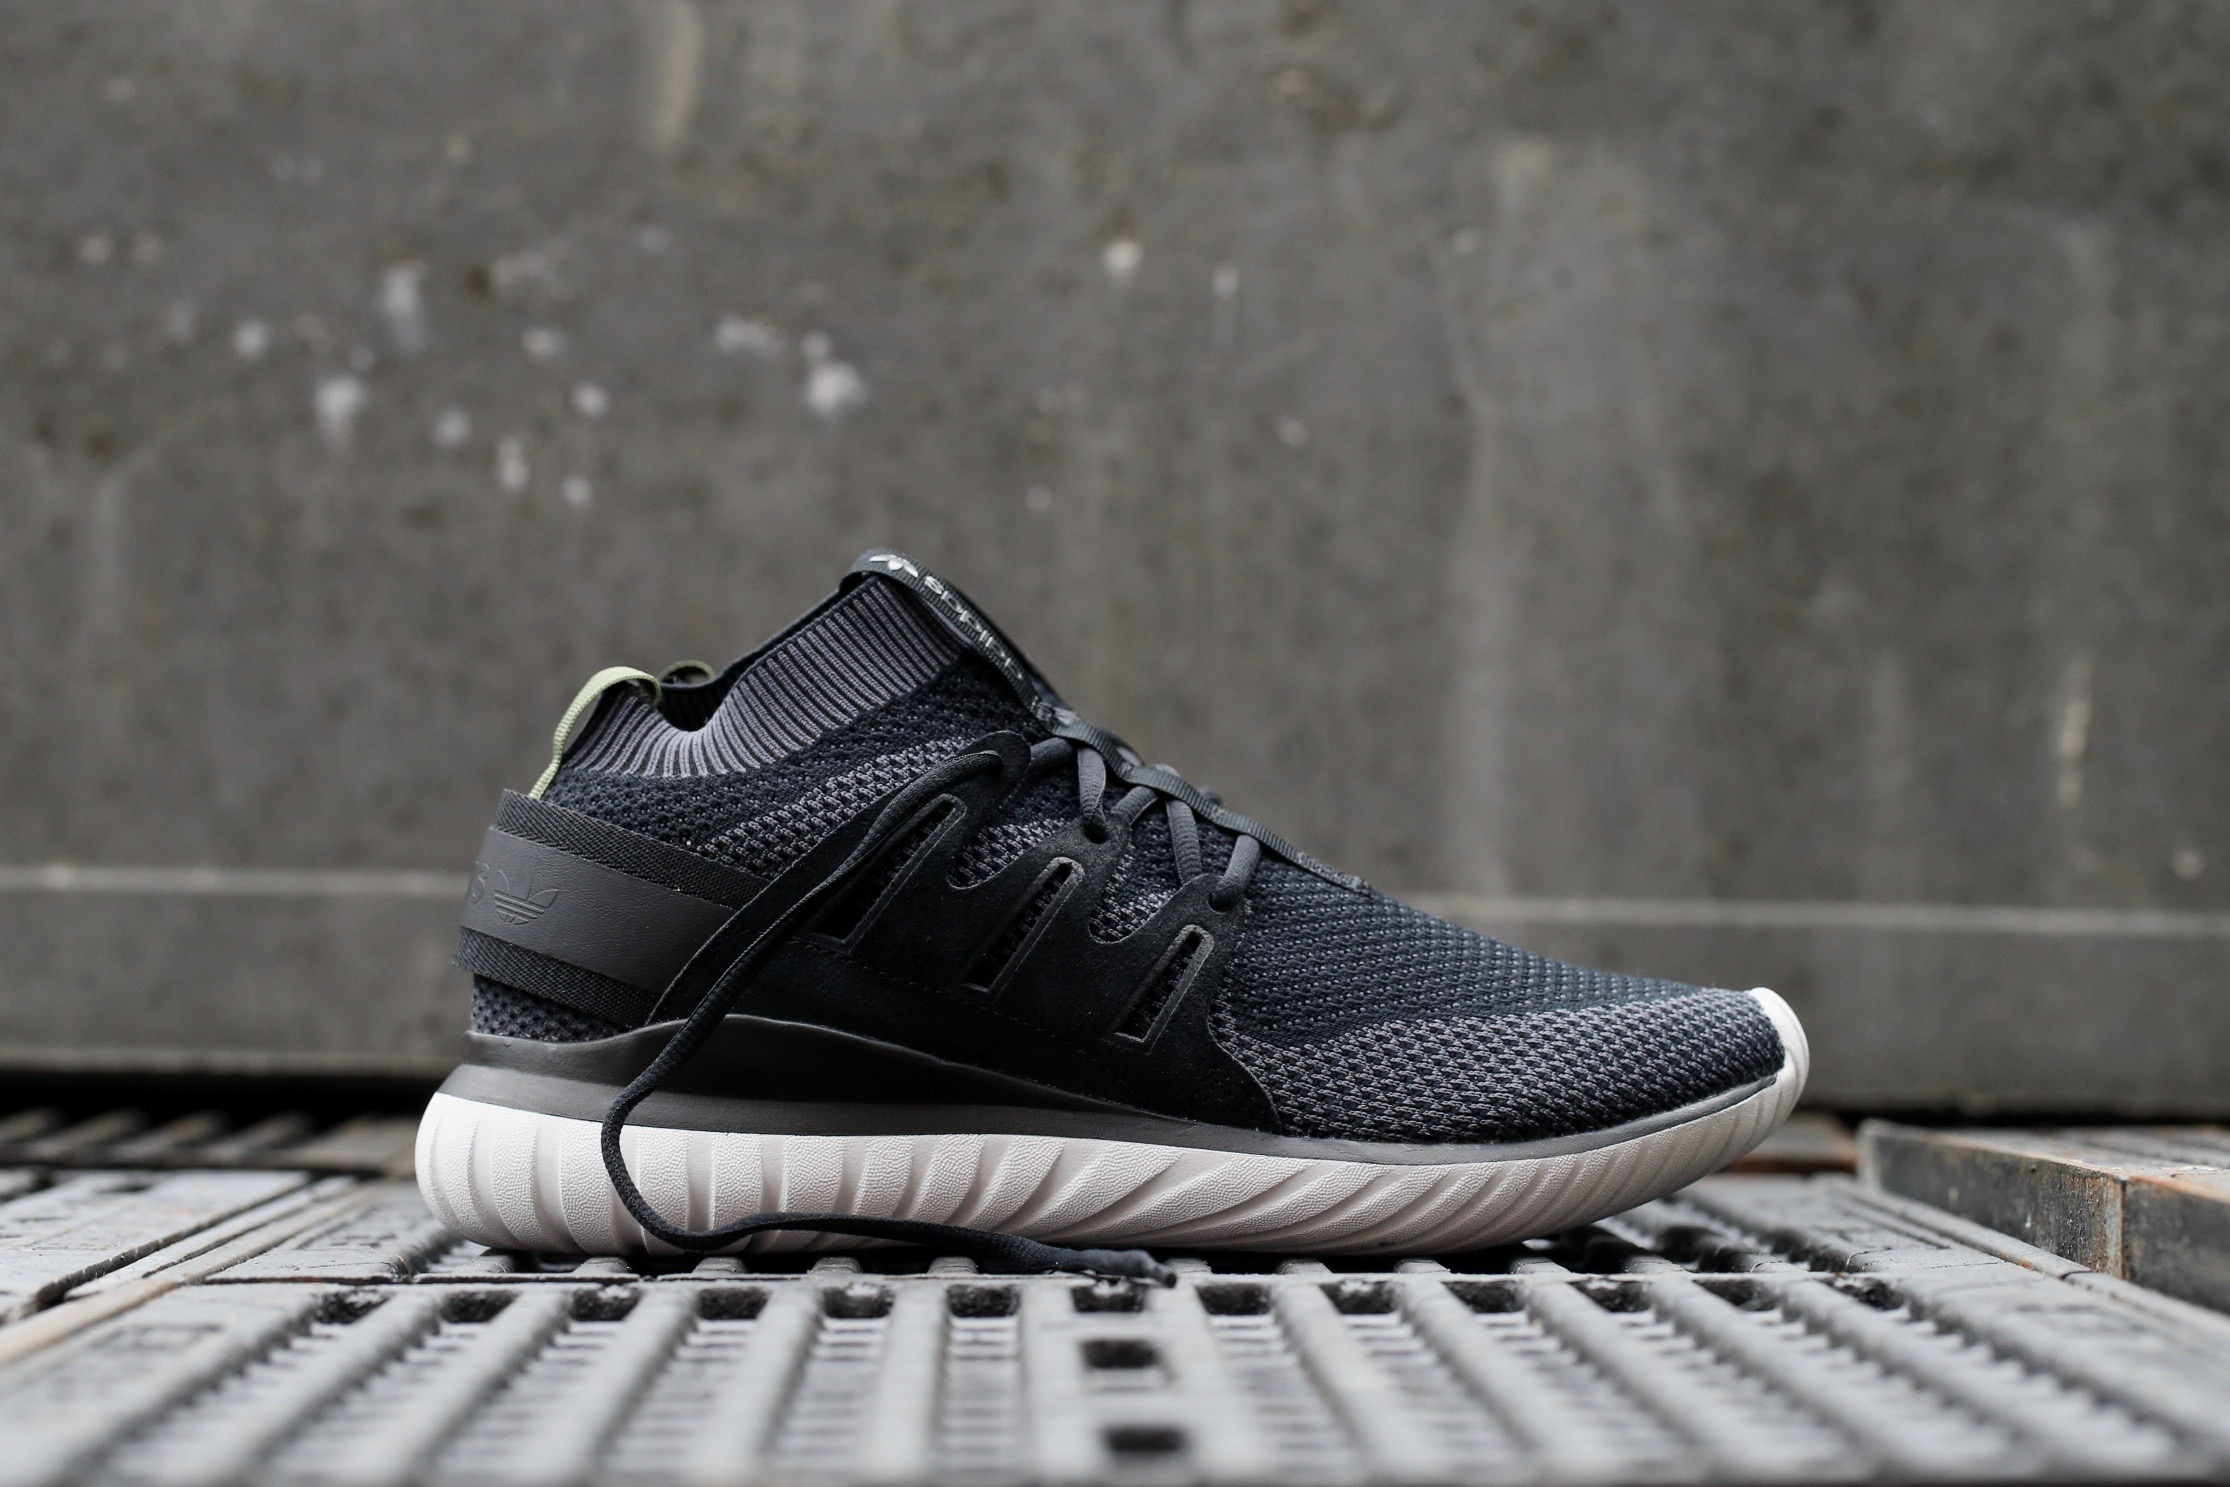 reputable site 7dffe f9860 adidas Originals Tubular Nova PK - Shadow Black / Core Black / Future Forest